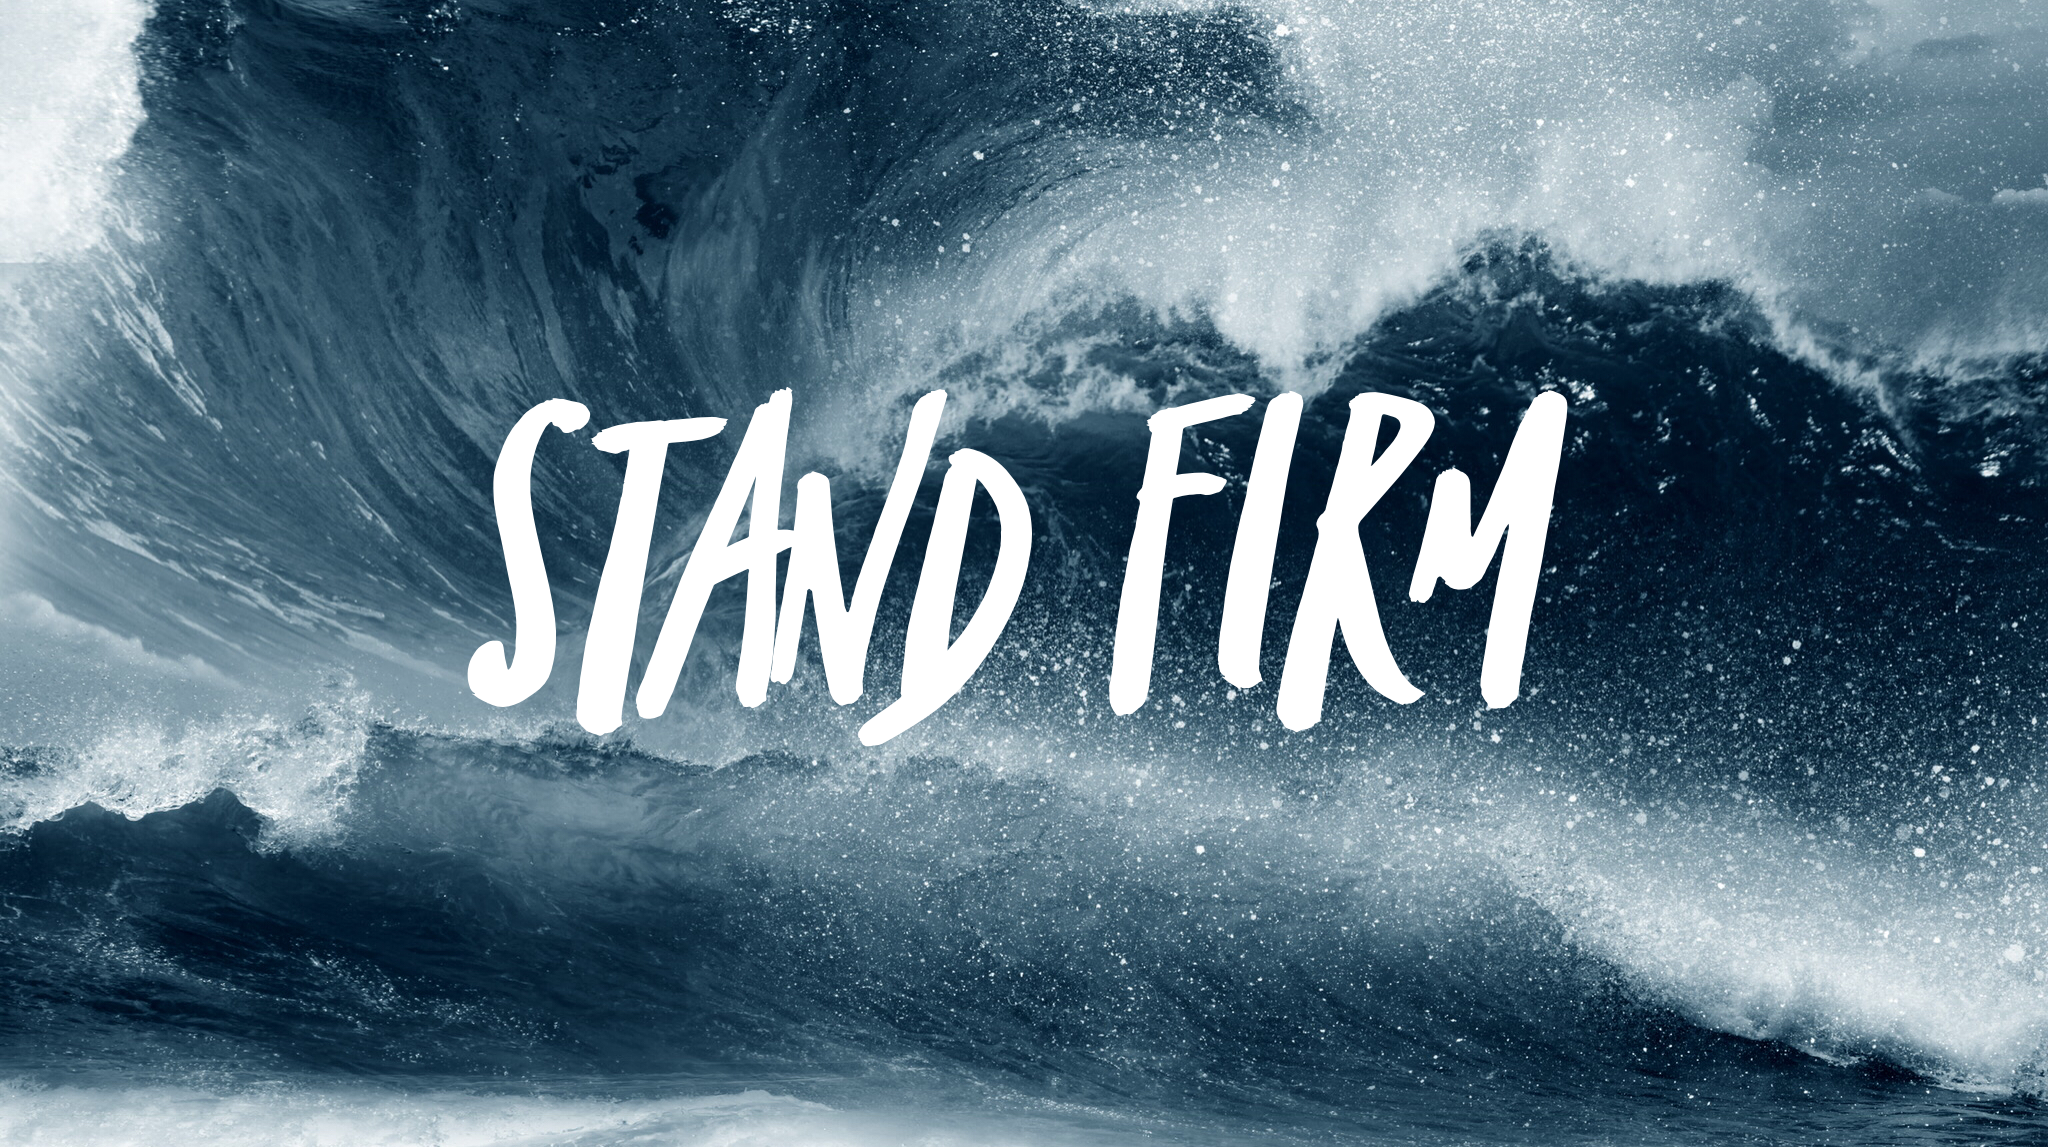 Stand Firm - (June 3, 2018 - August 5, 2018)